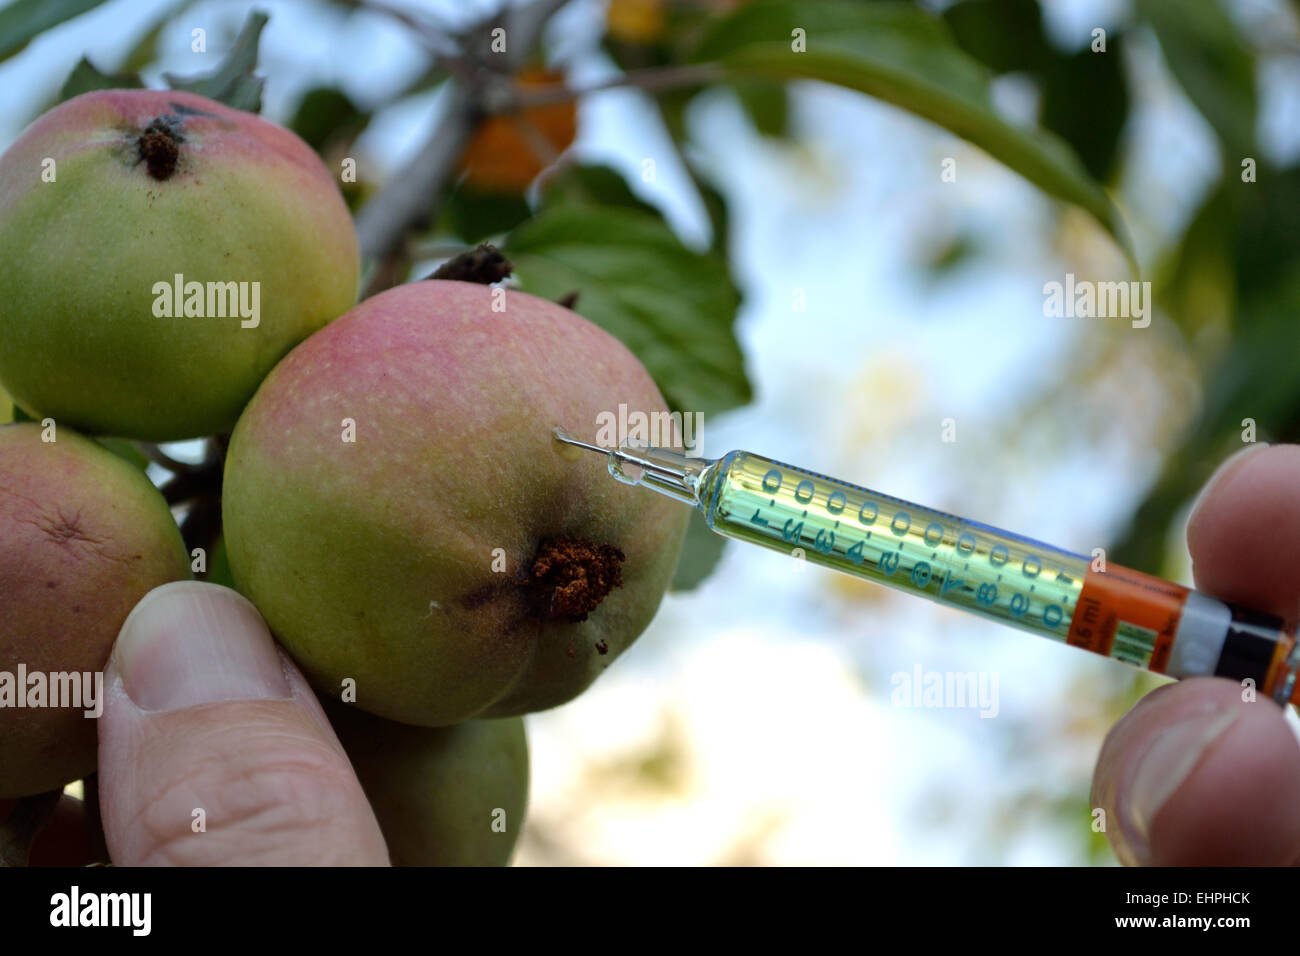 Genetic manipulation of old apple variety - Stock Image